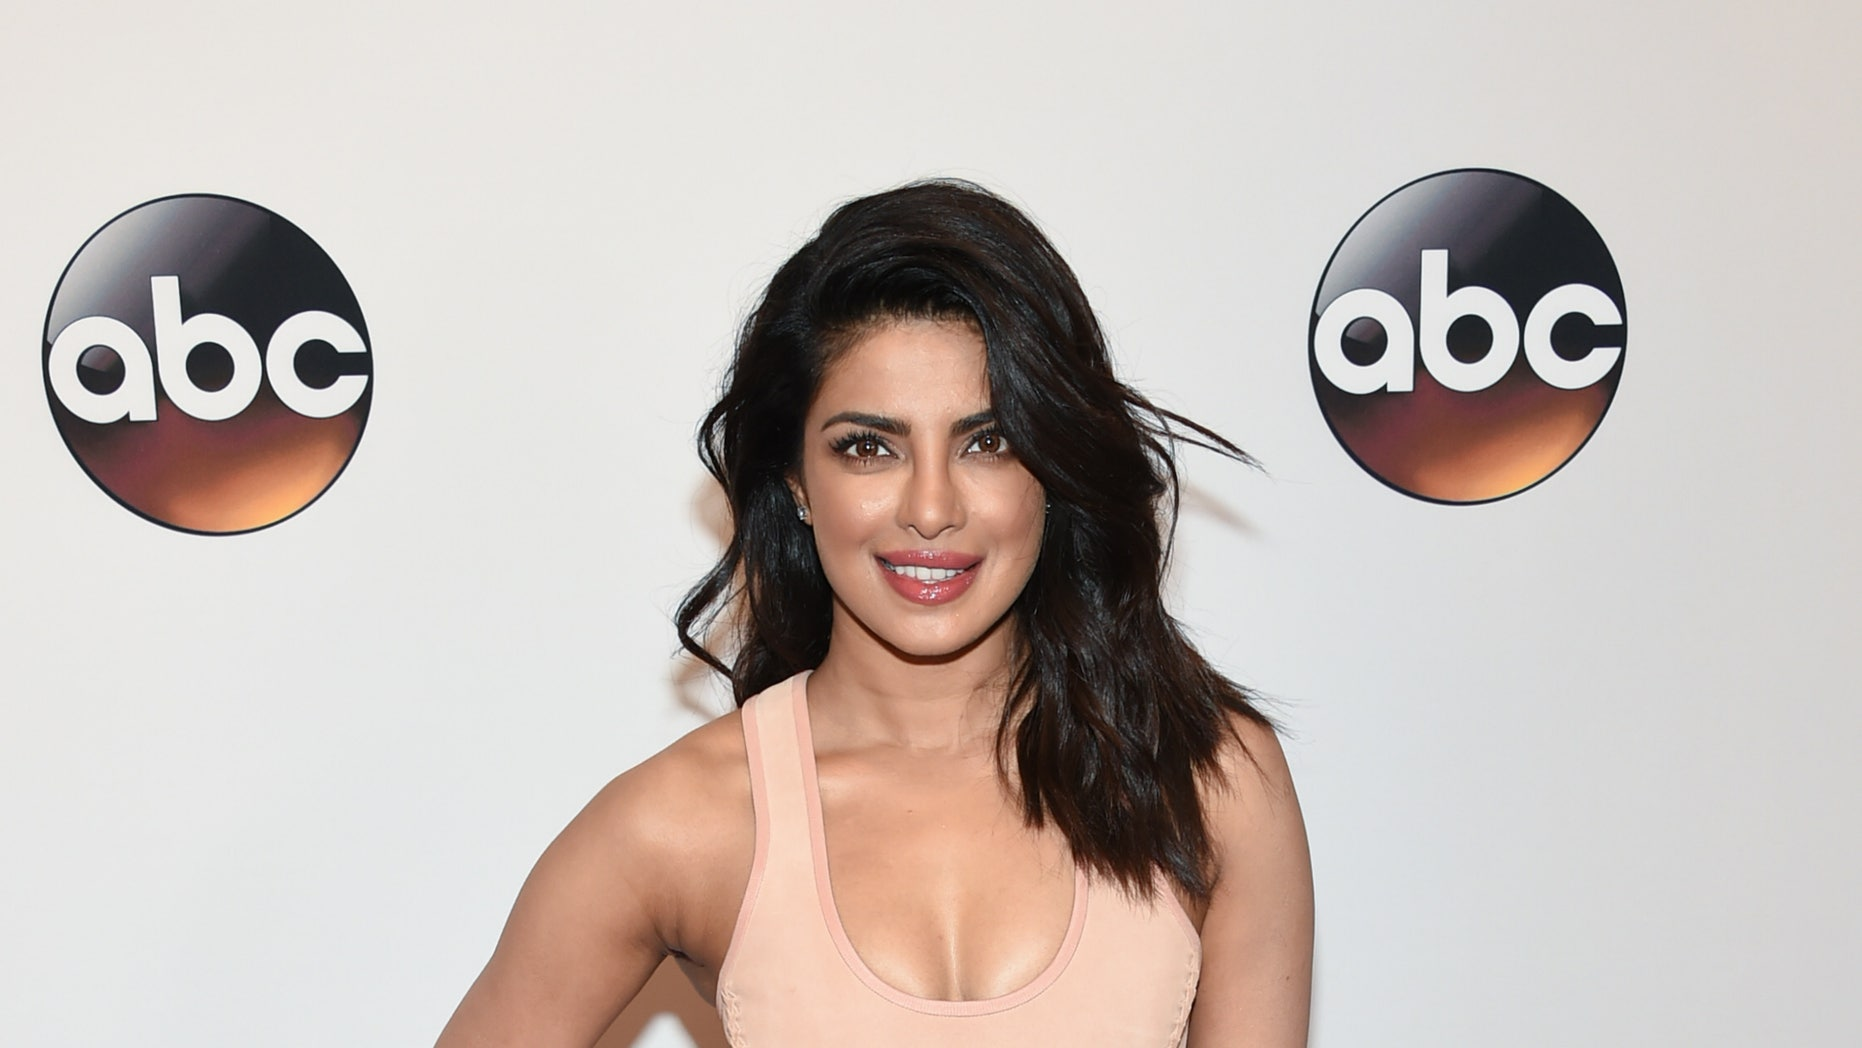 Actress Priyanka Chopra attends the ABC 2016 Network Upfront Presentation at David Geffen Hall on Tuesday, May 17, 2016, in New York. (Photo by Evan Agostini/Invision/AP)